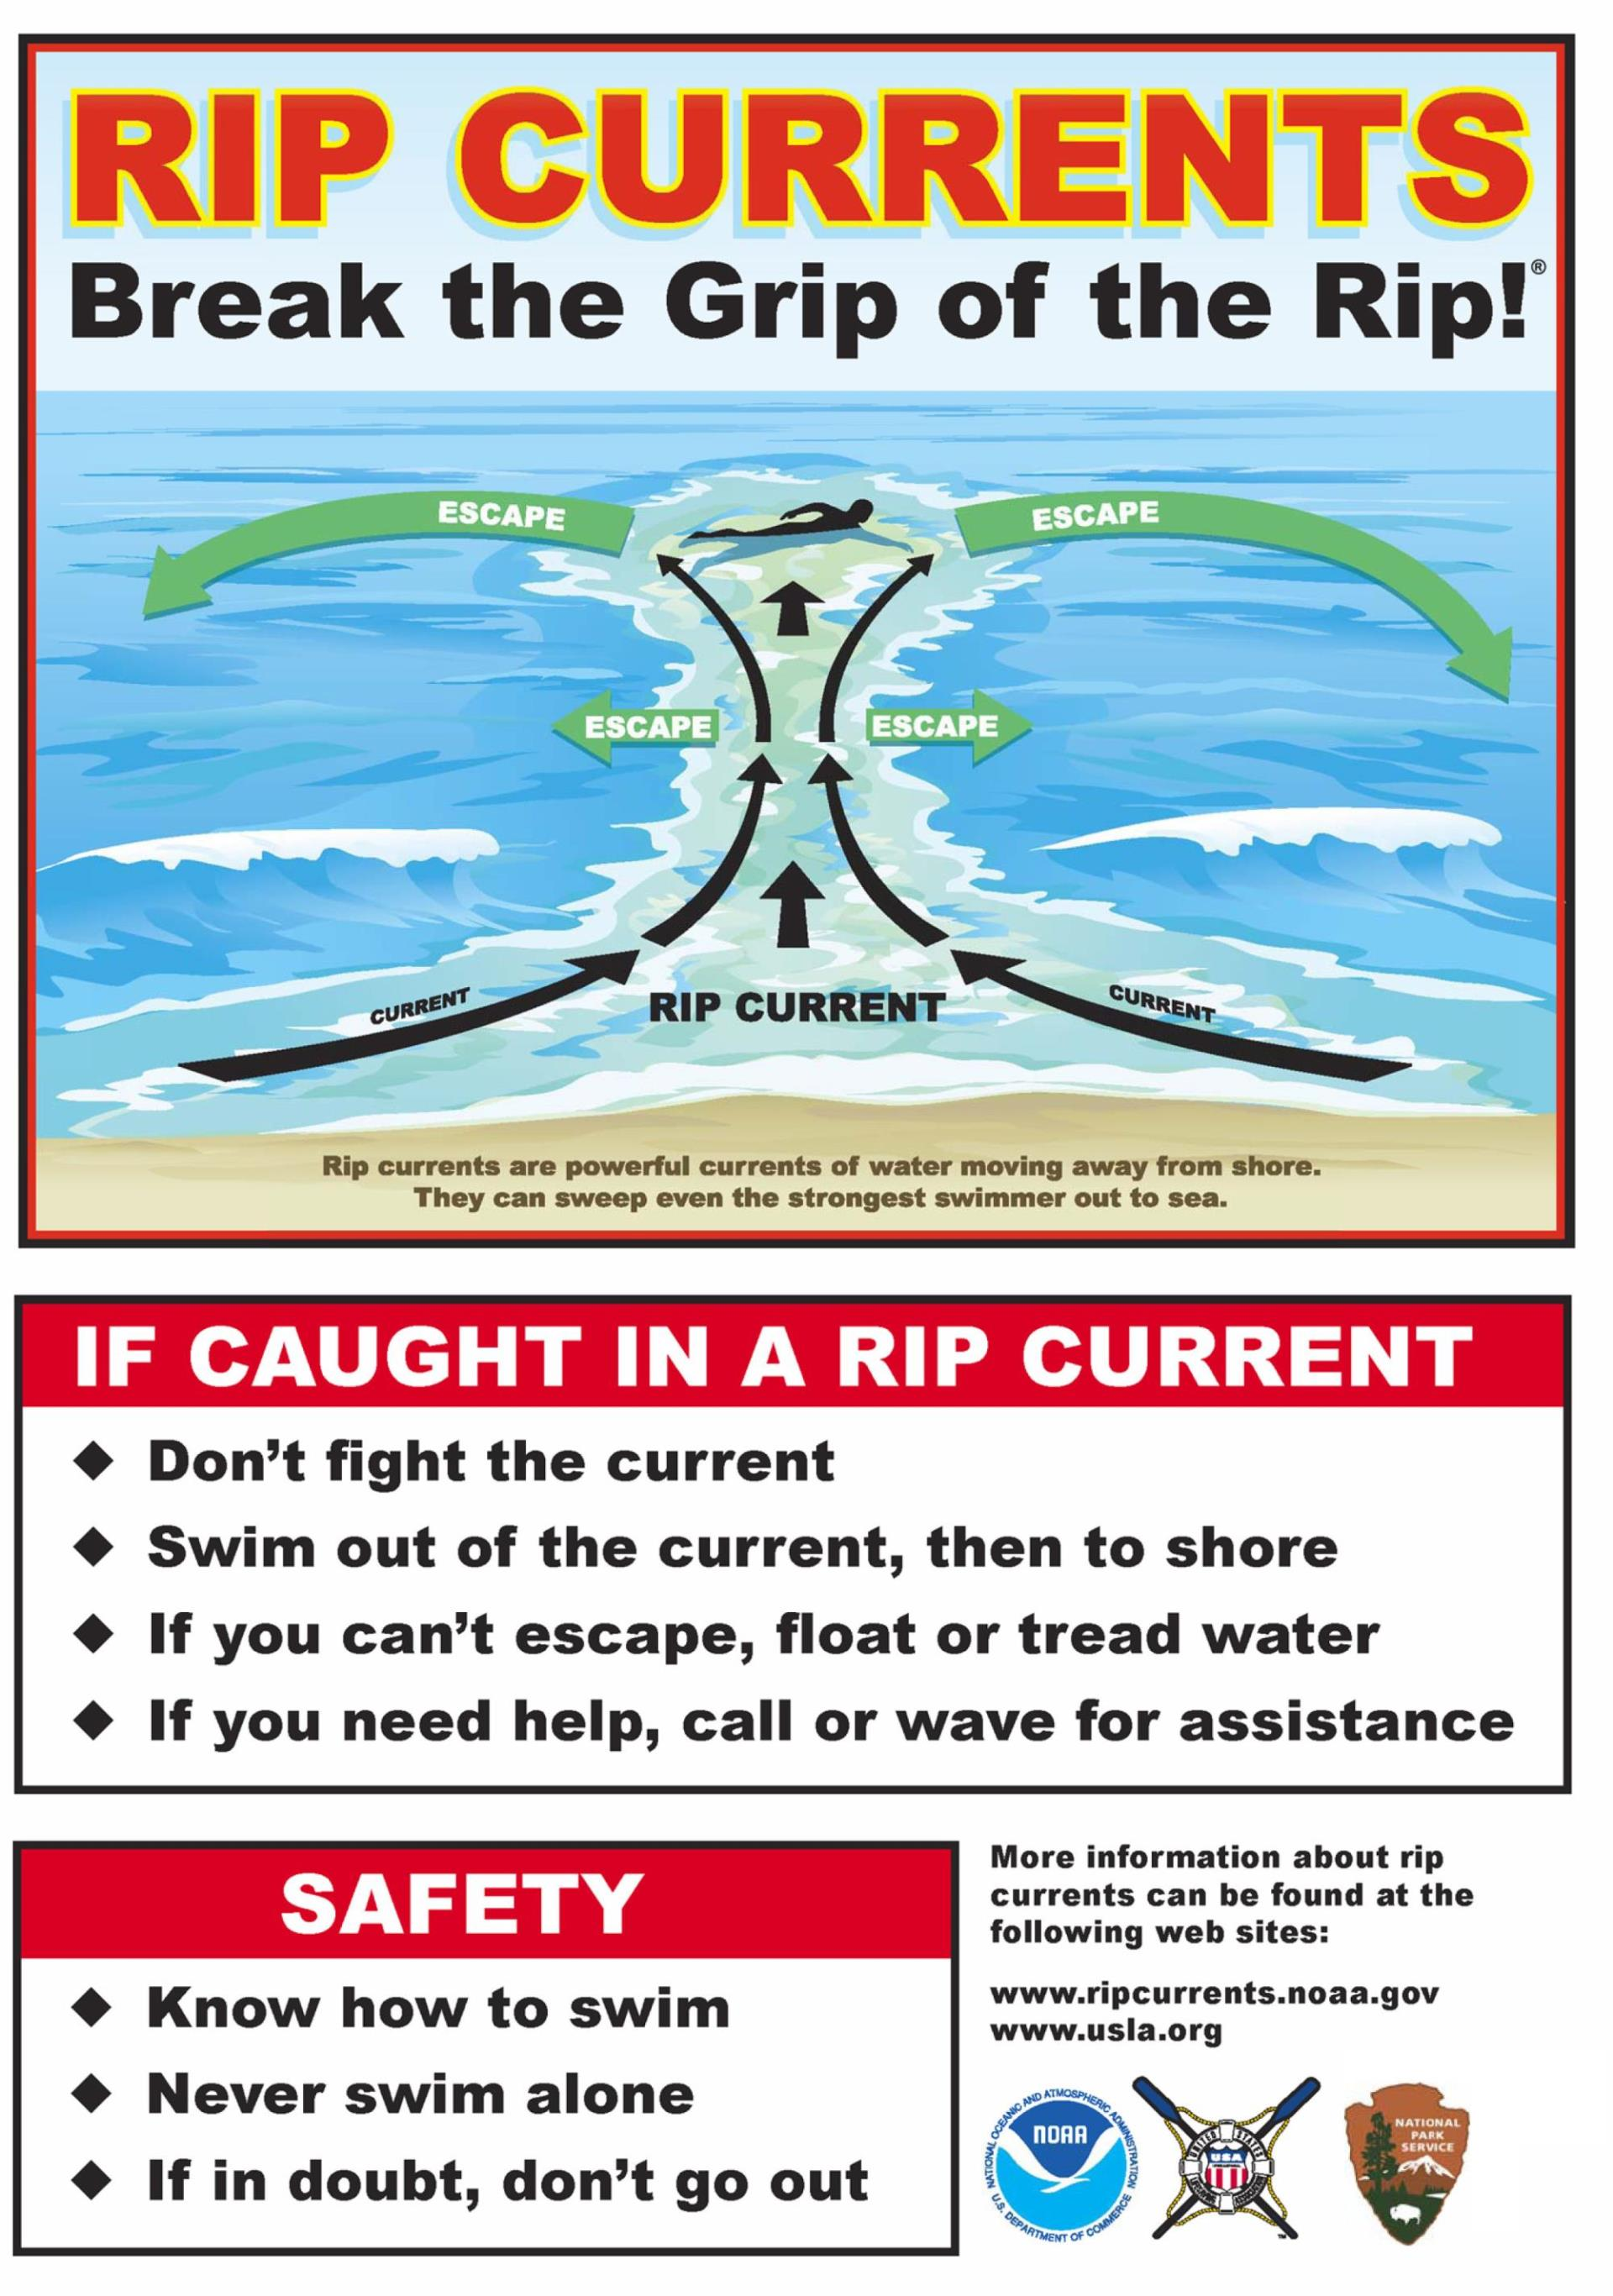 Rip currents, how to break the grip of the  rip